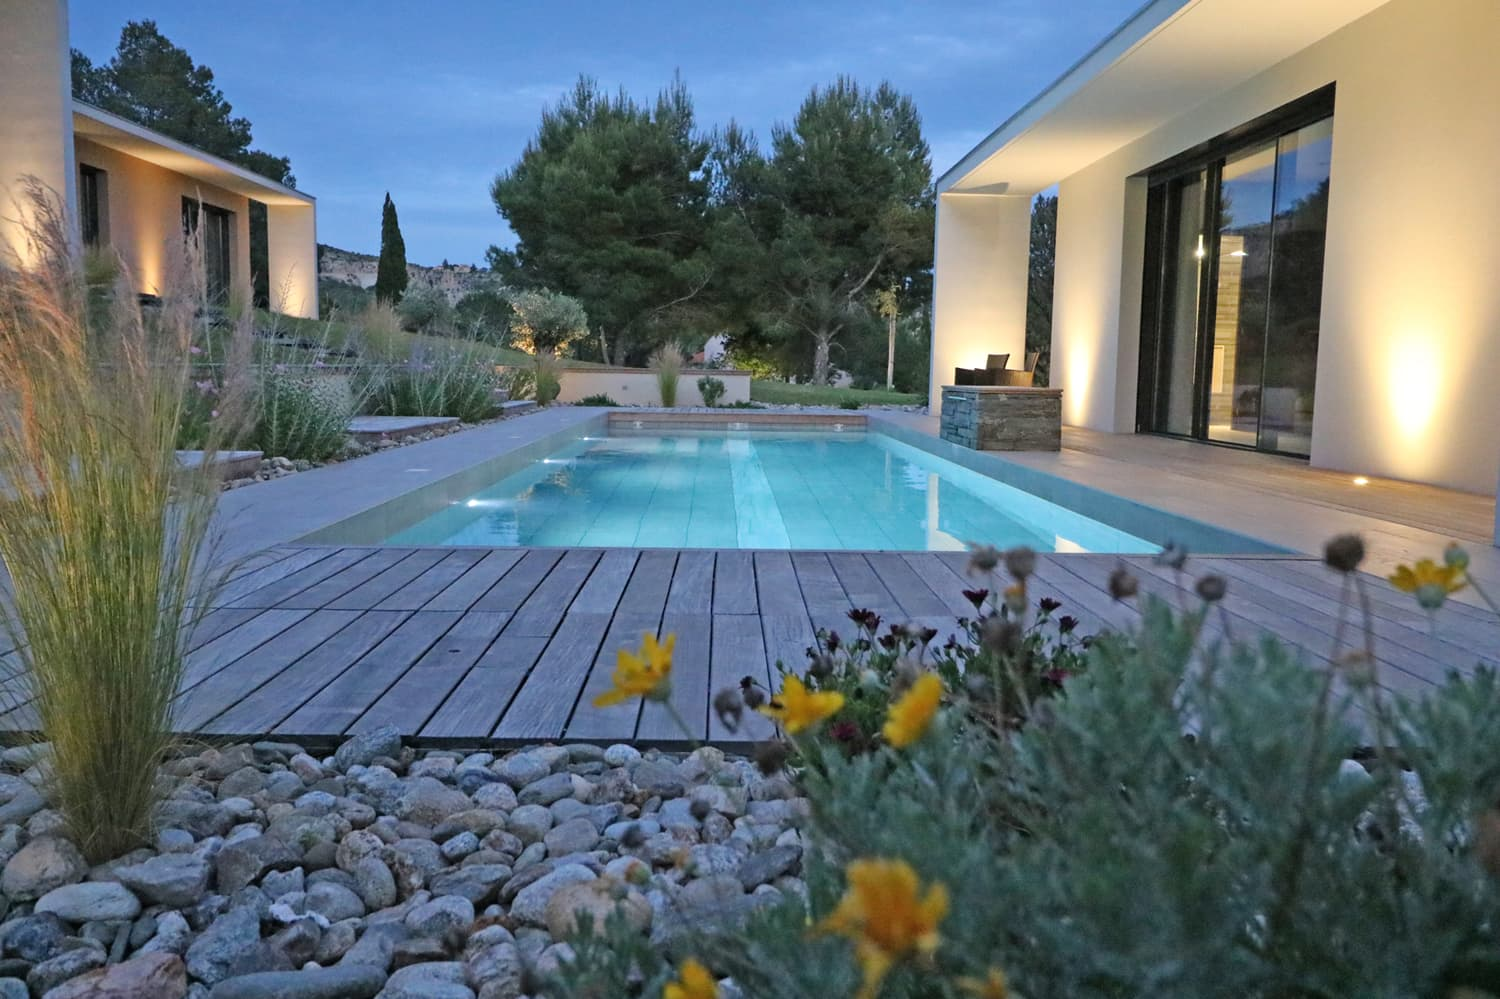 Holiday villa in Languedoc with private pool at night